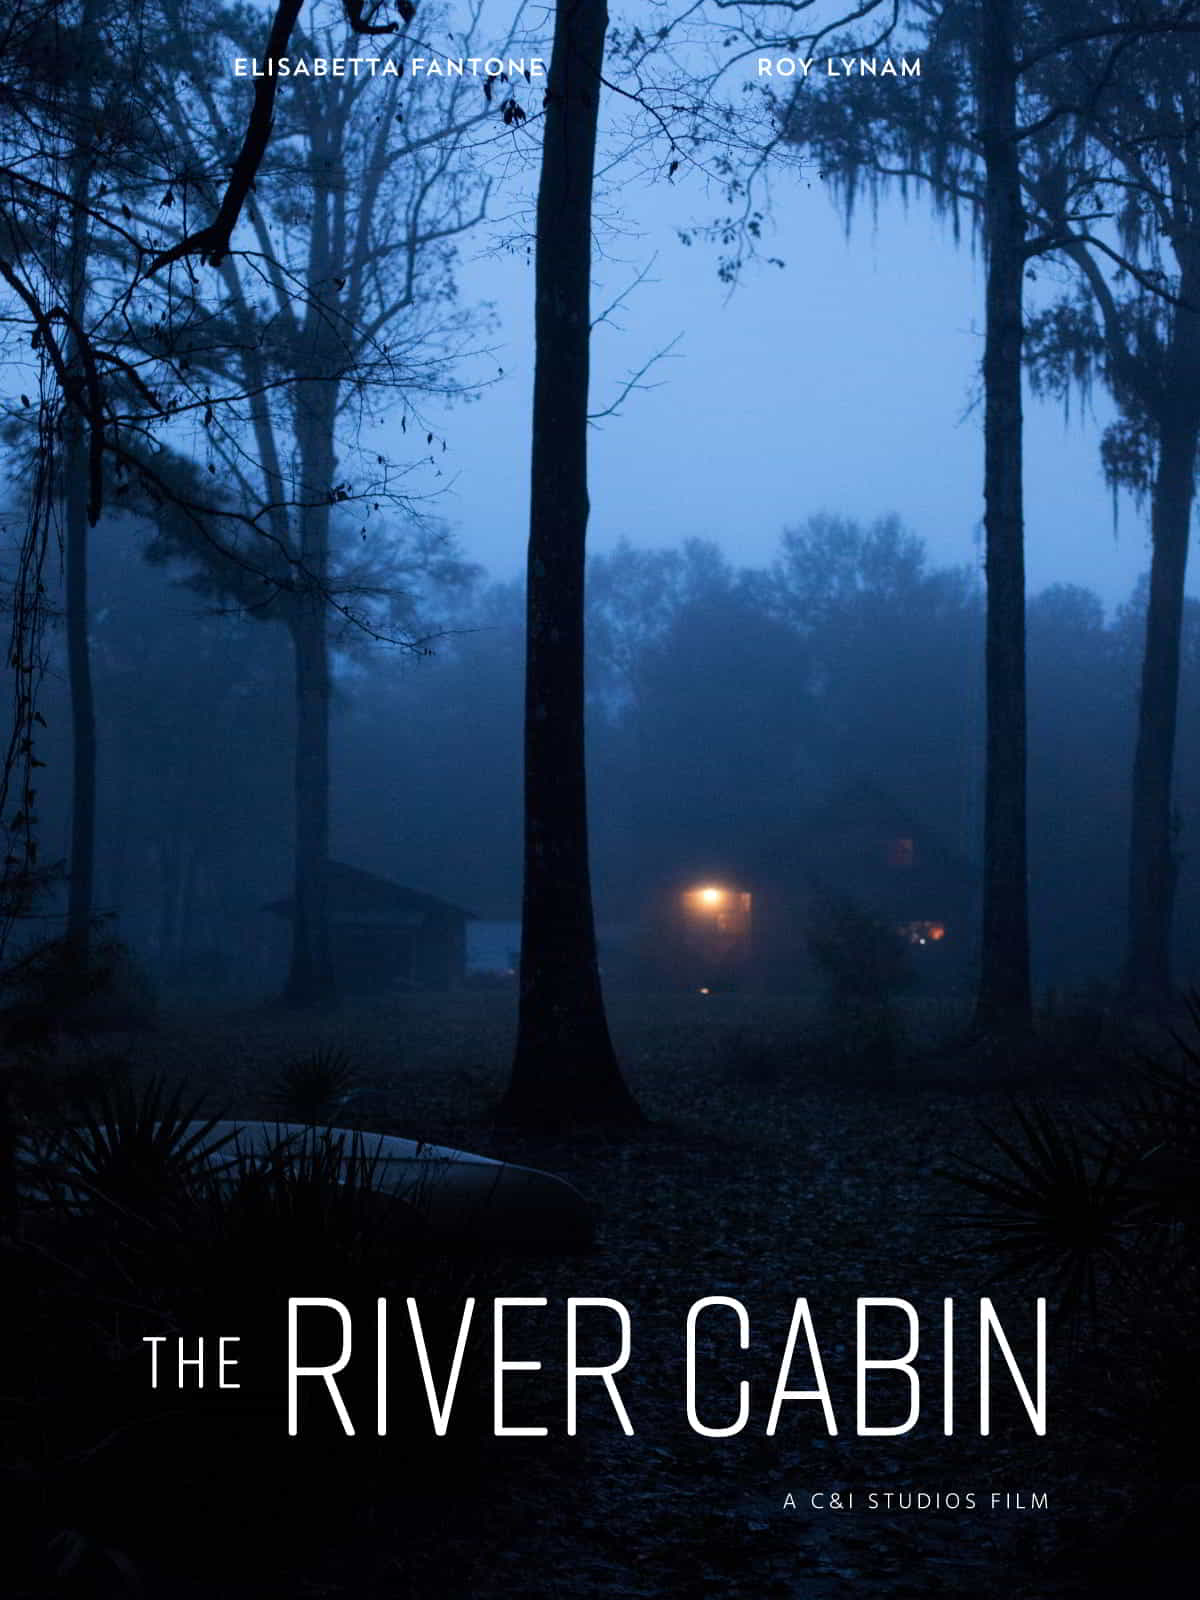 The River Cabin And Original C&I Films Short Film